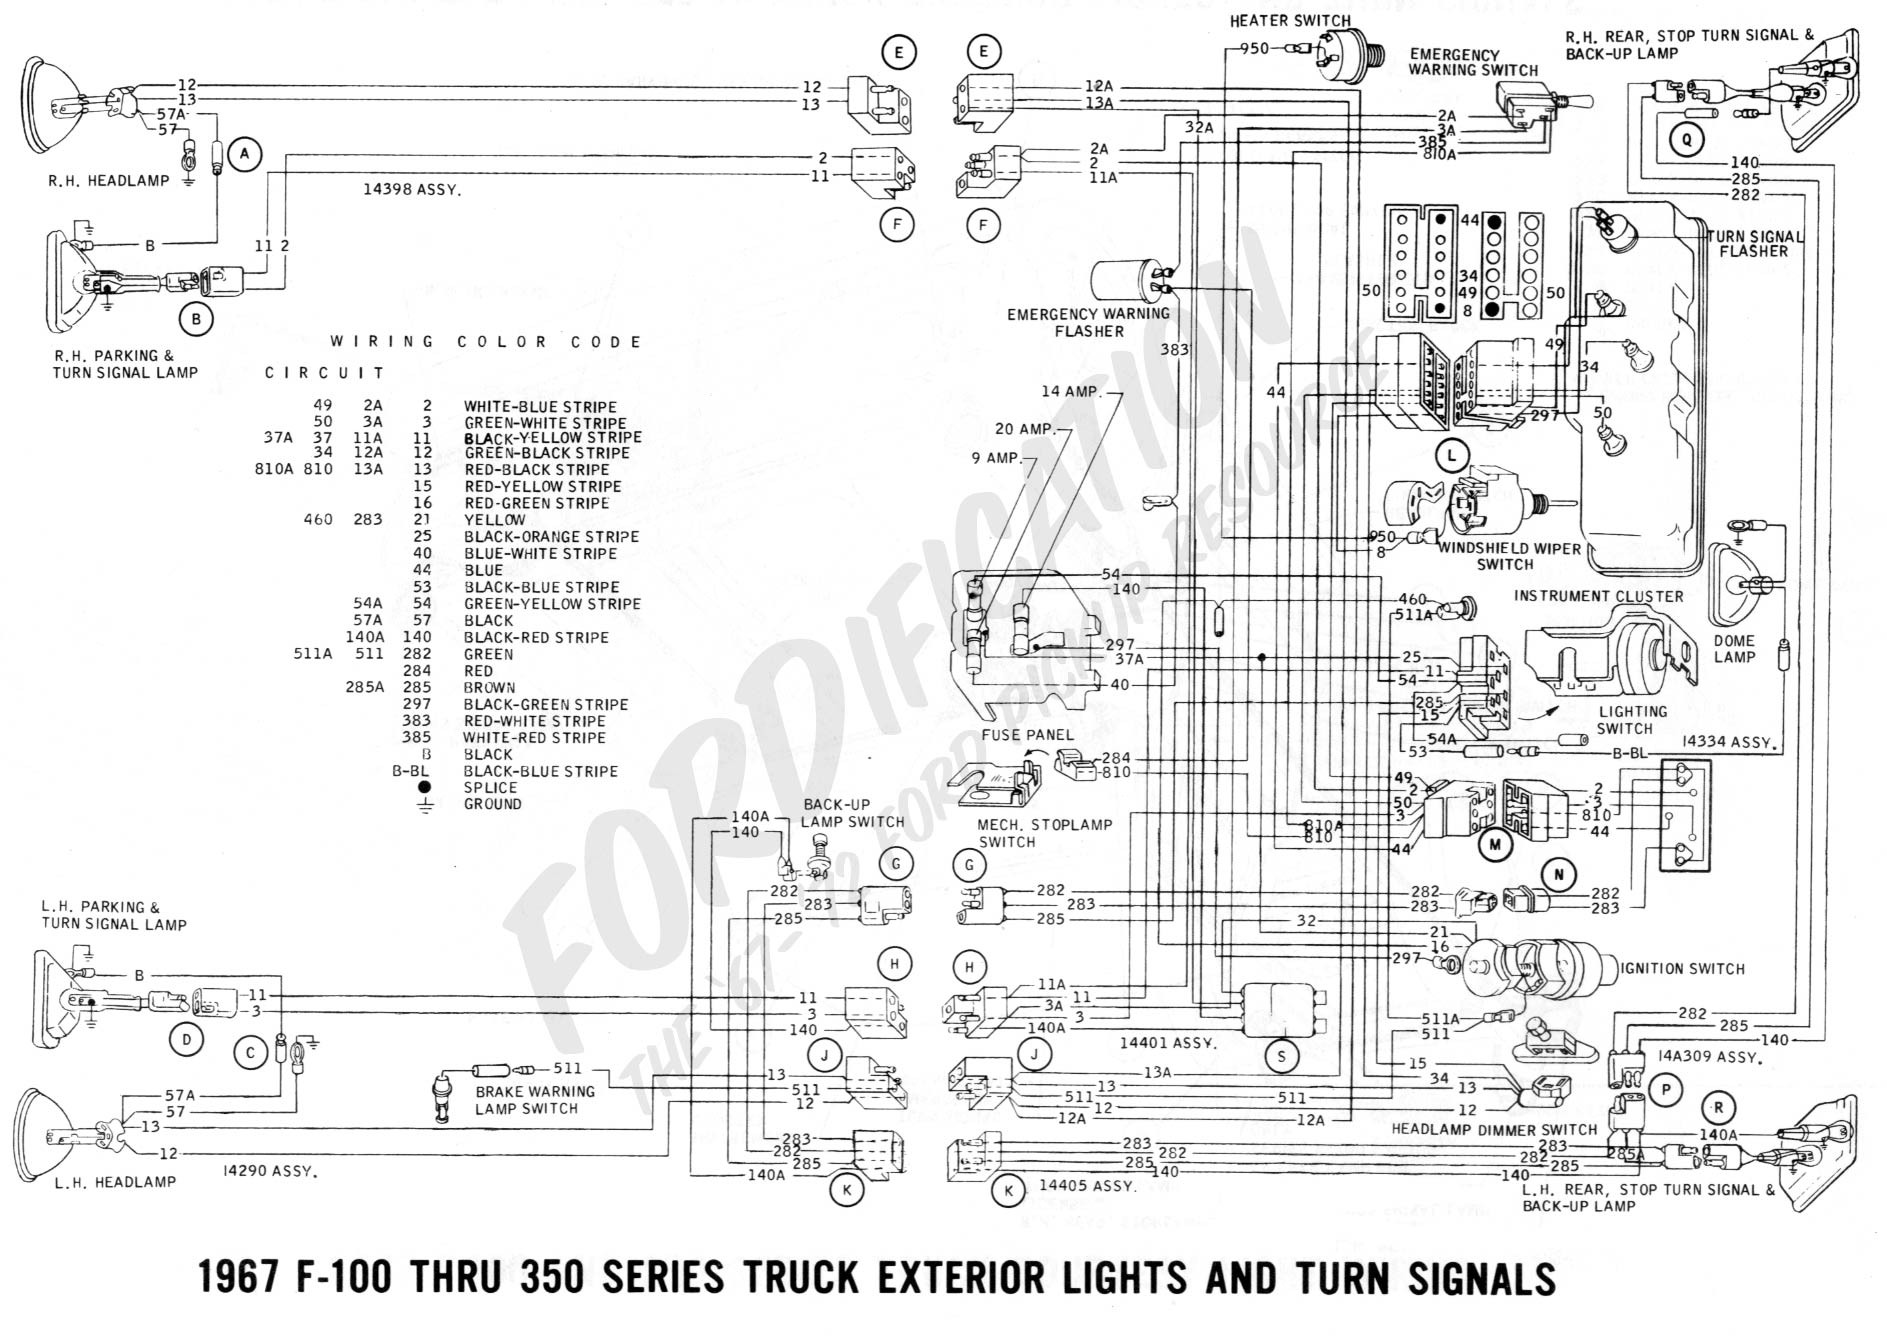 1971 ford f100 tail light wiring diagram schematic diagrams rh  ogmconsulting co 1981 ford f150 ignition wiring diagram 1981 ford f150  ignition wiring ...